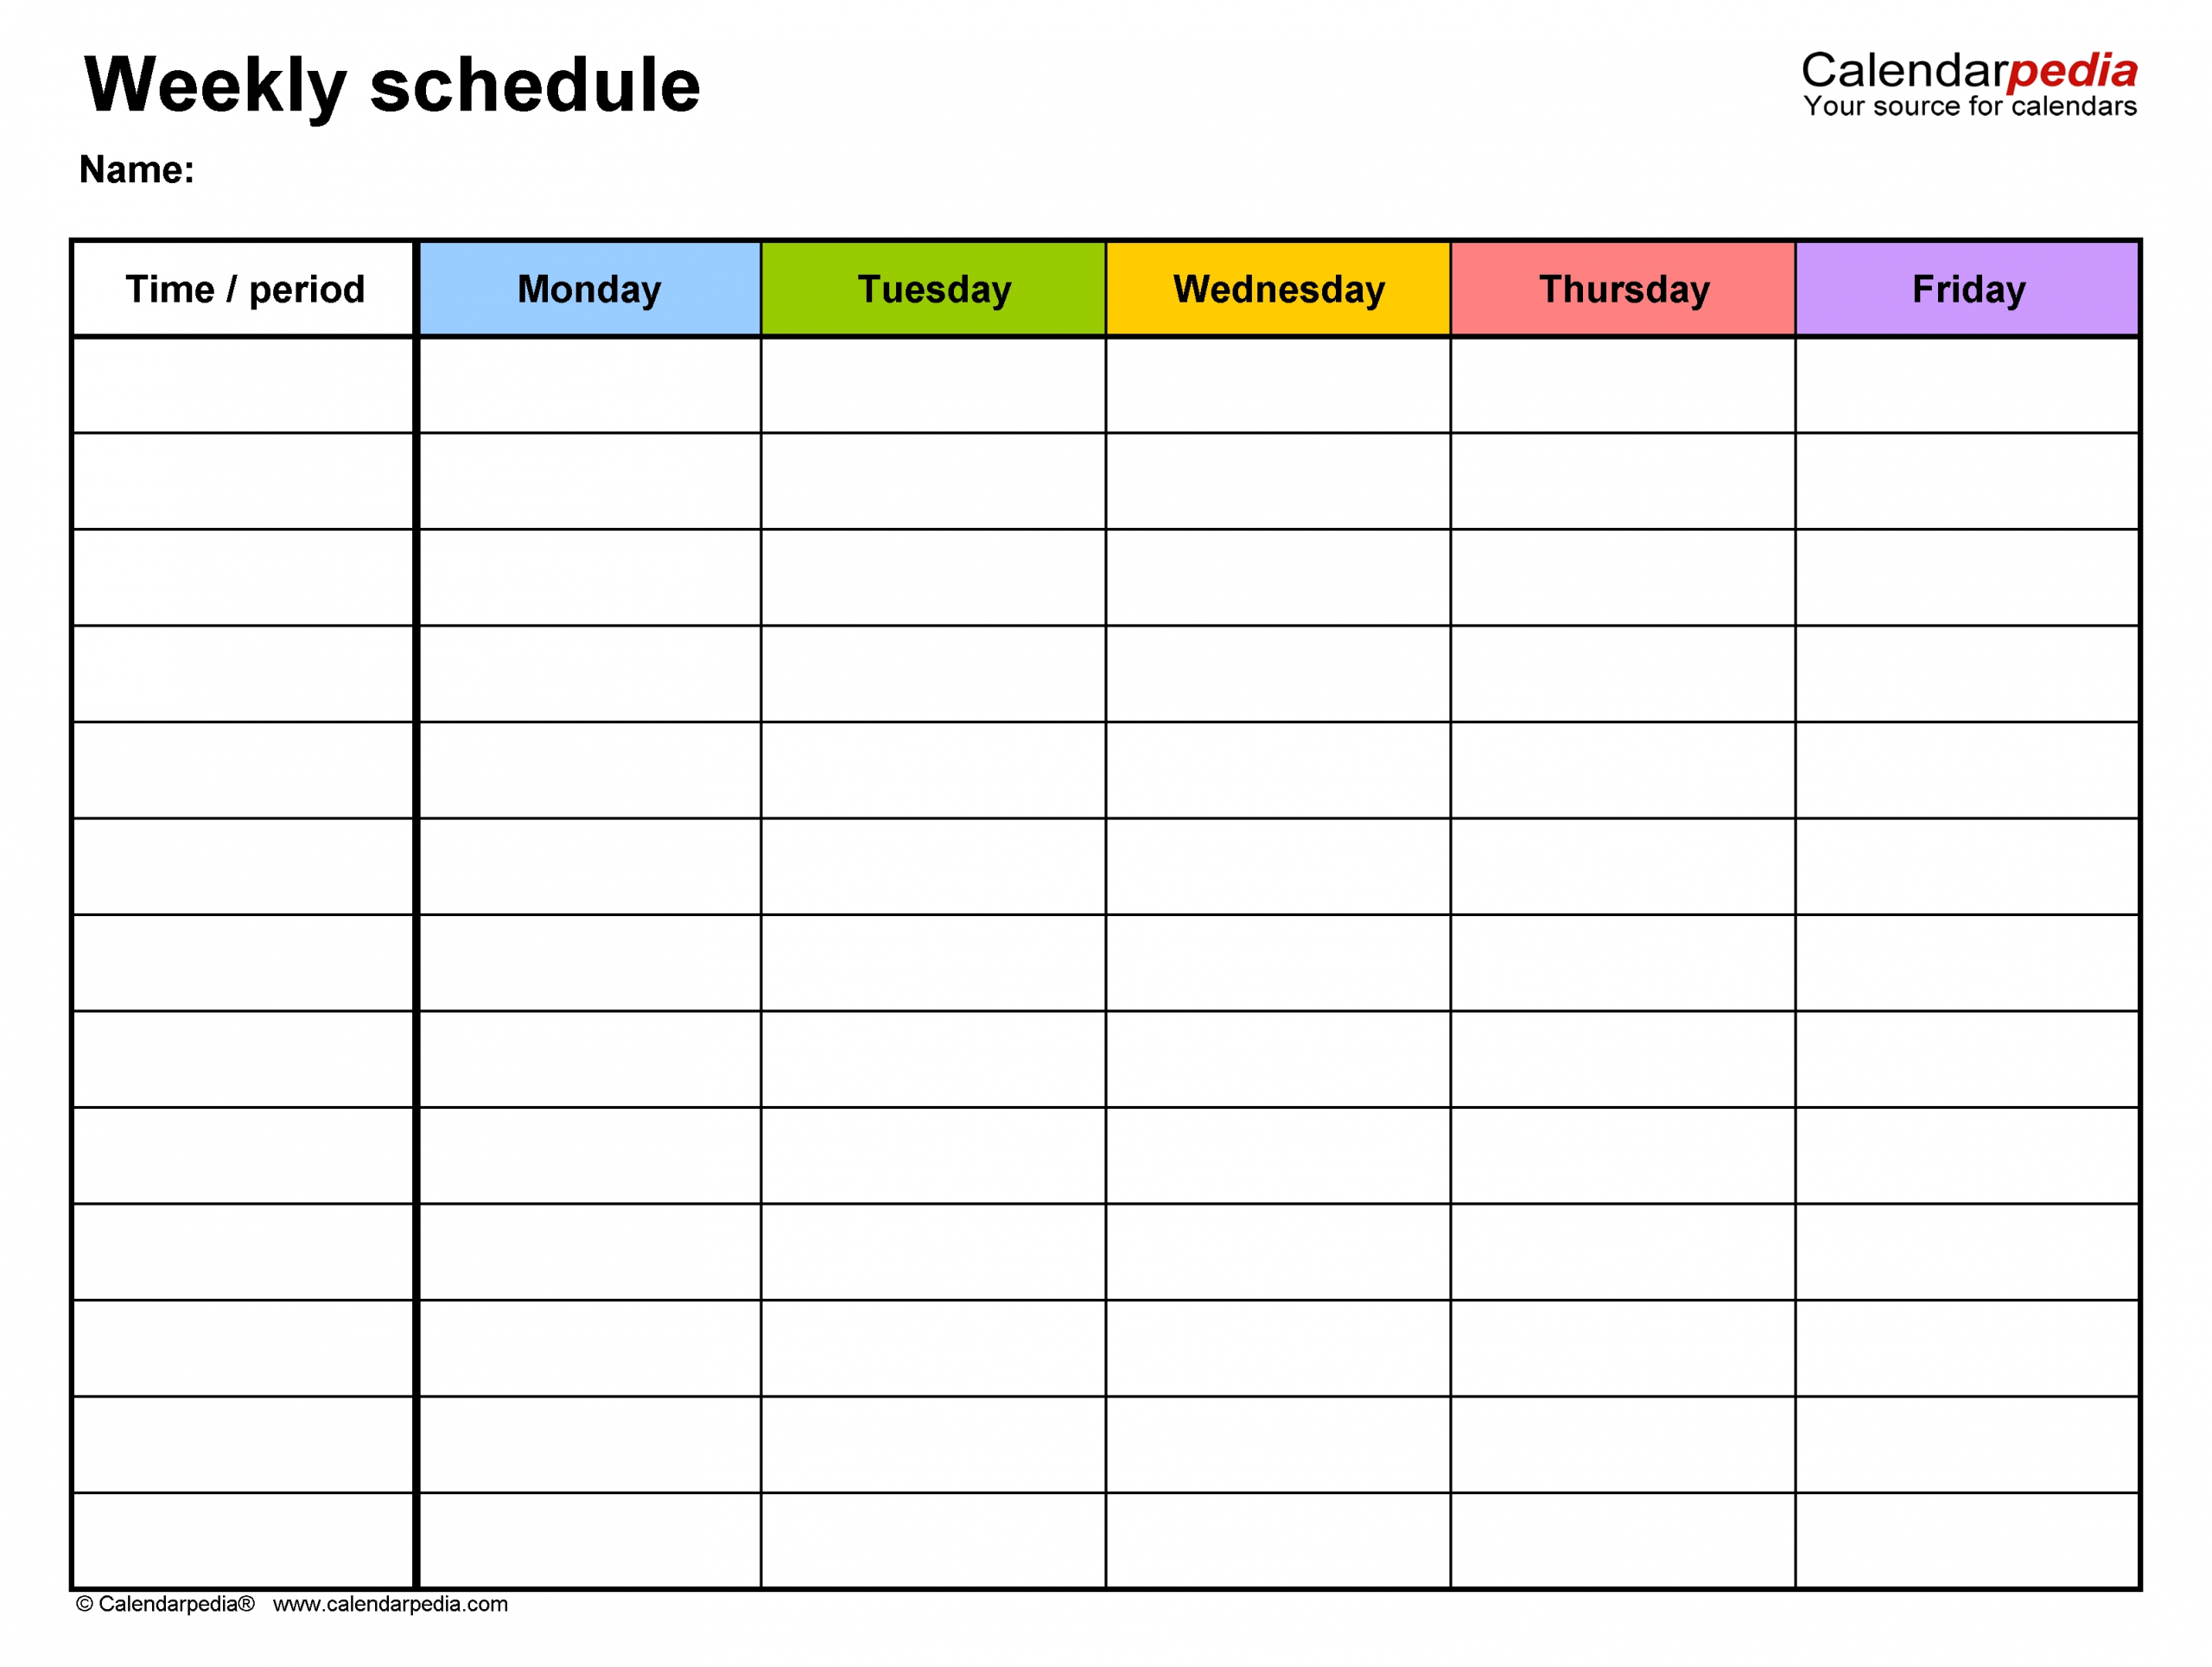 Free Weekly Schedule Templates For Word - 18 Templates in Monsay Through Friday Calneder With Times